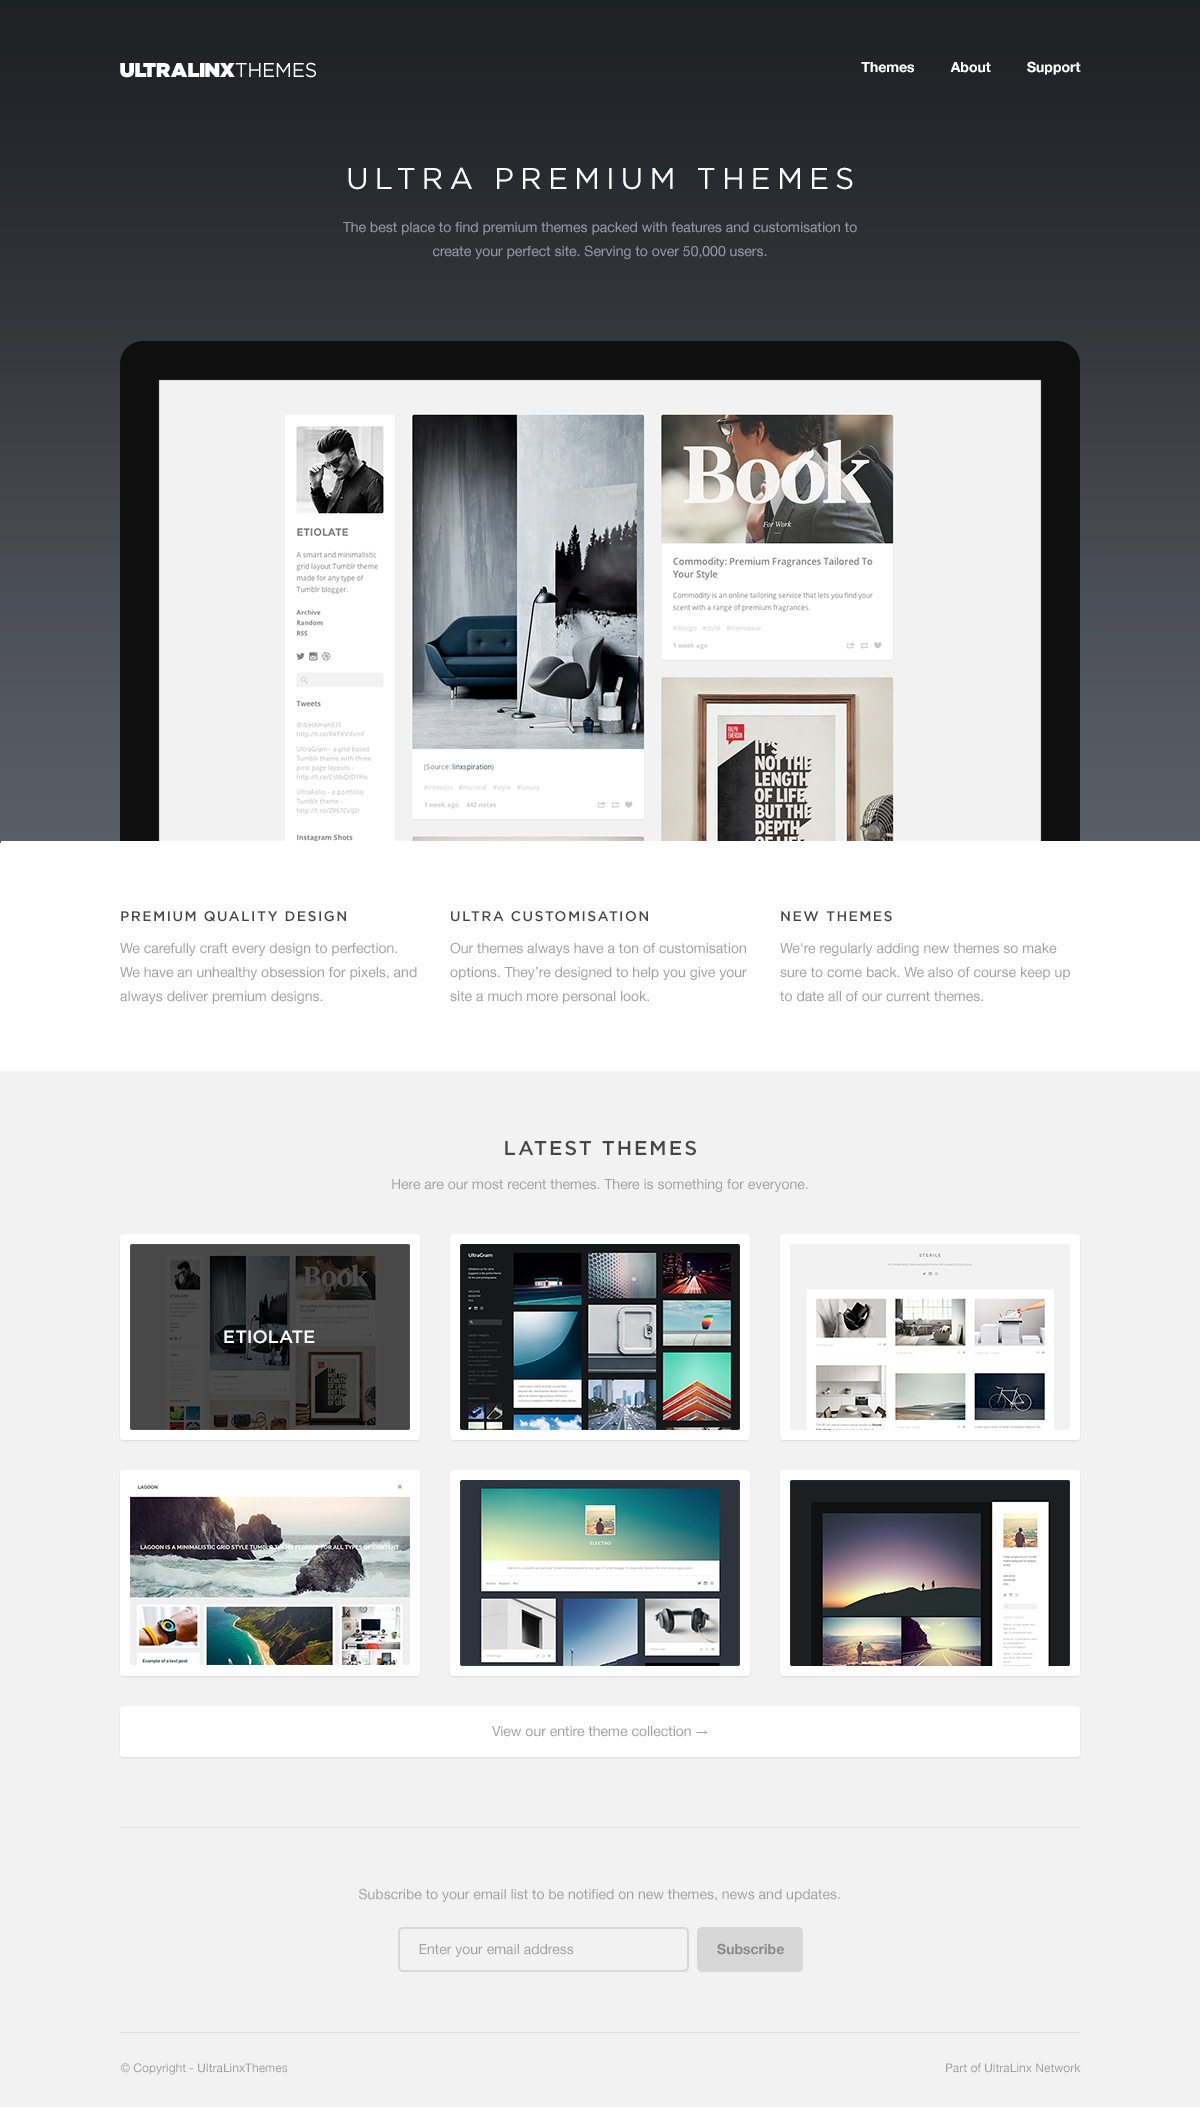 Theme Site Redesign by Oliur